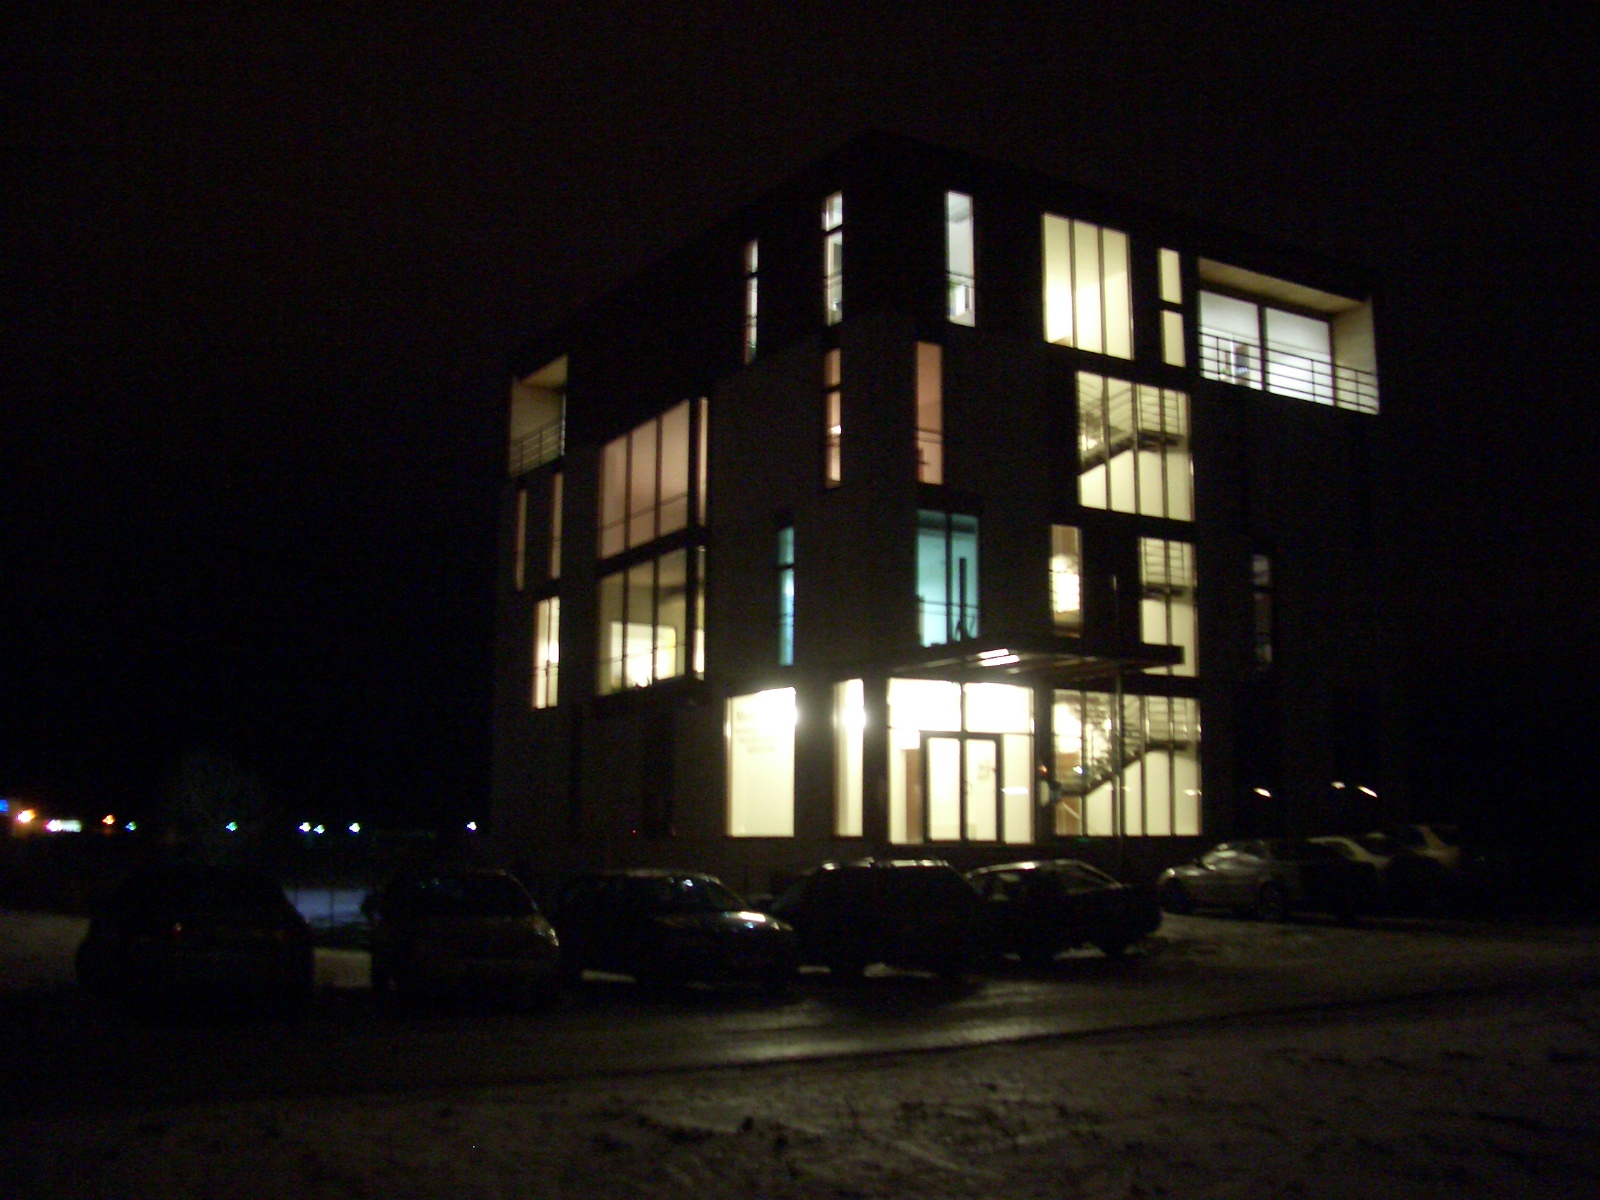 OFFICE BLOCK IN ÕISMÄE